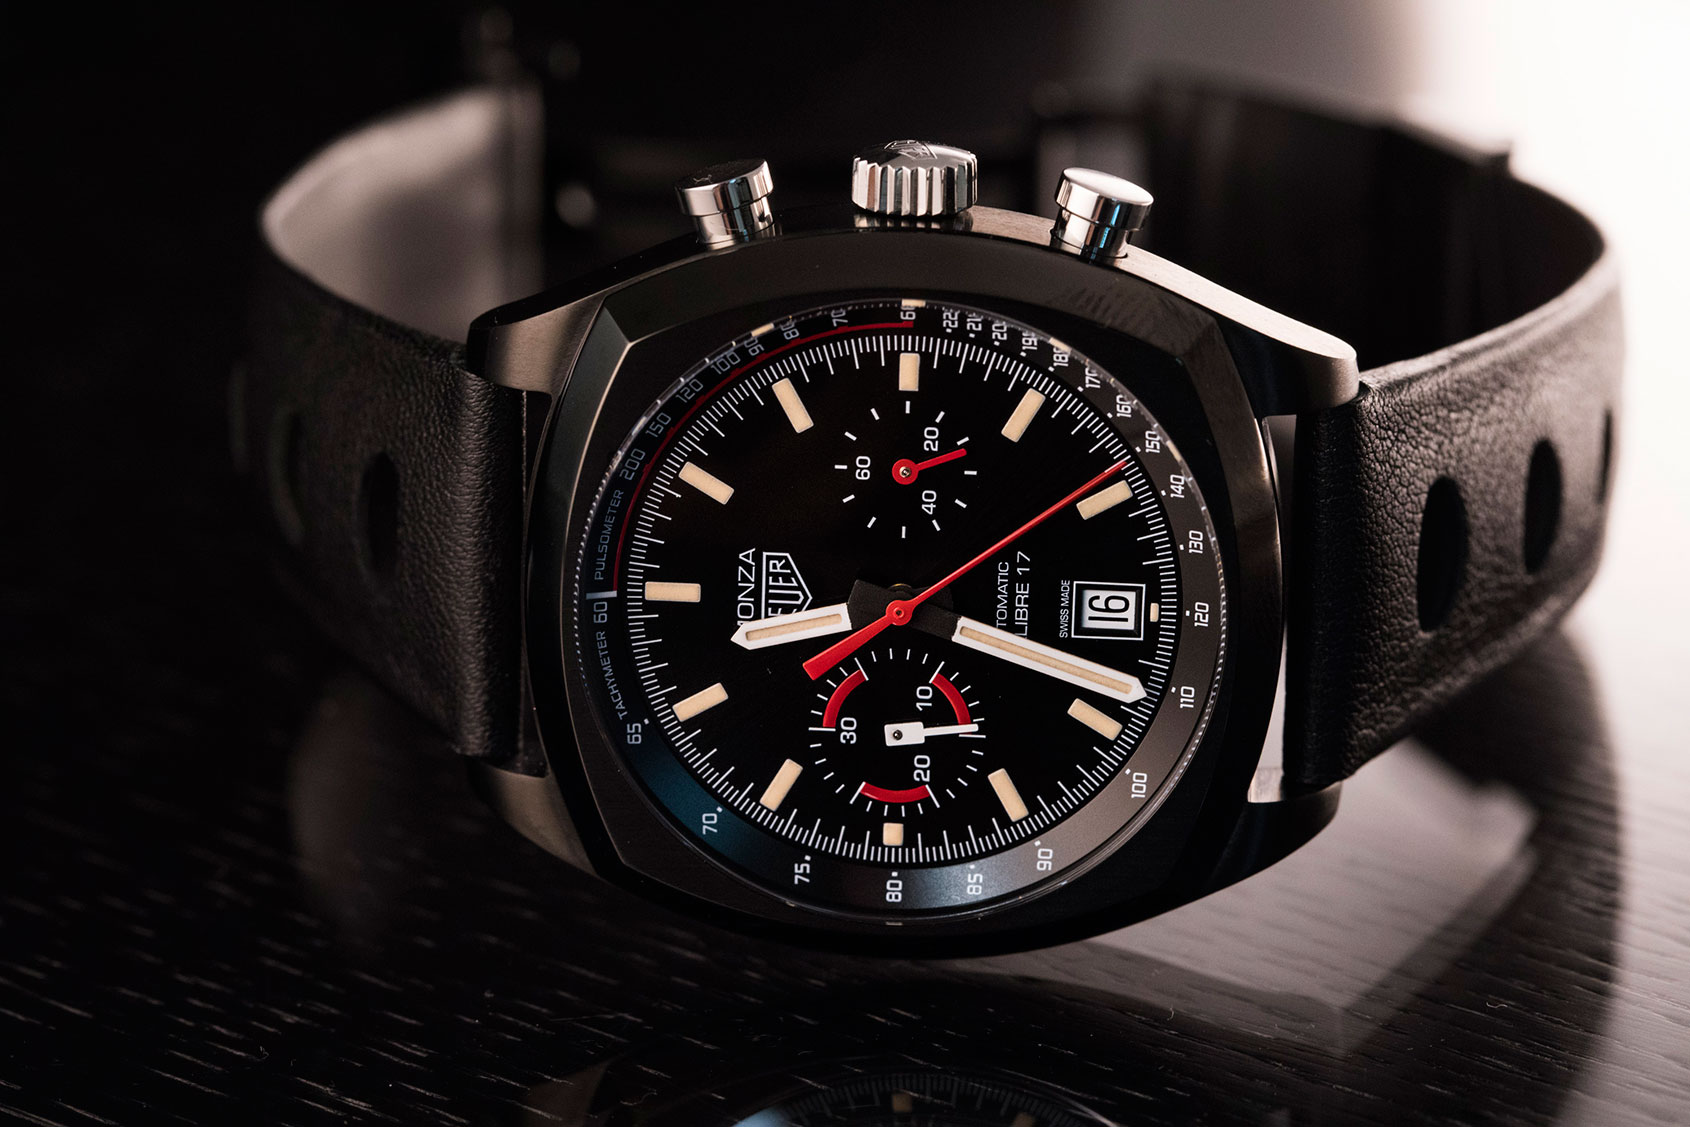 The best watches to wear with black – Part 2, featuring Audemars Piguet, Breitling, Tudor and Bulgari